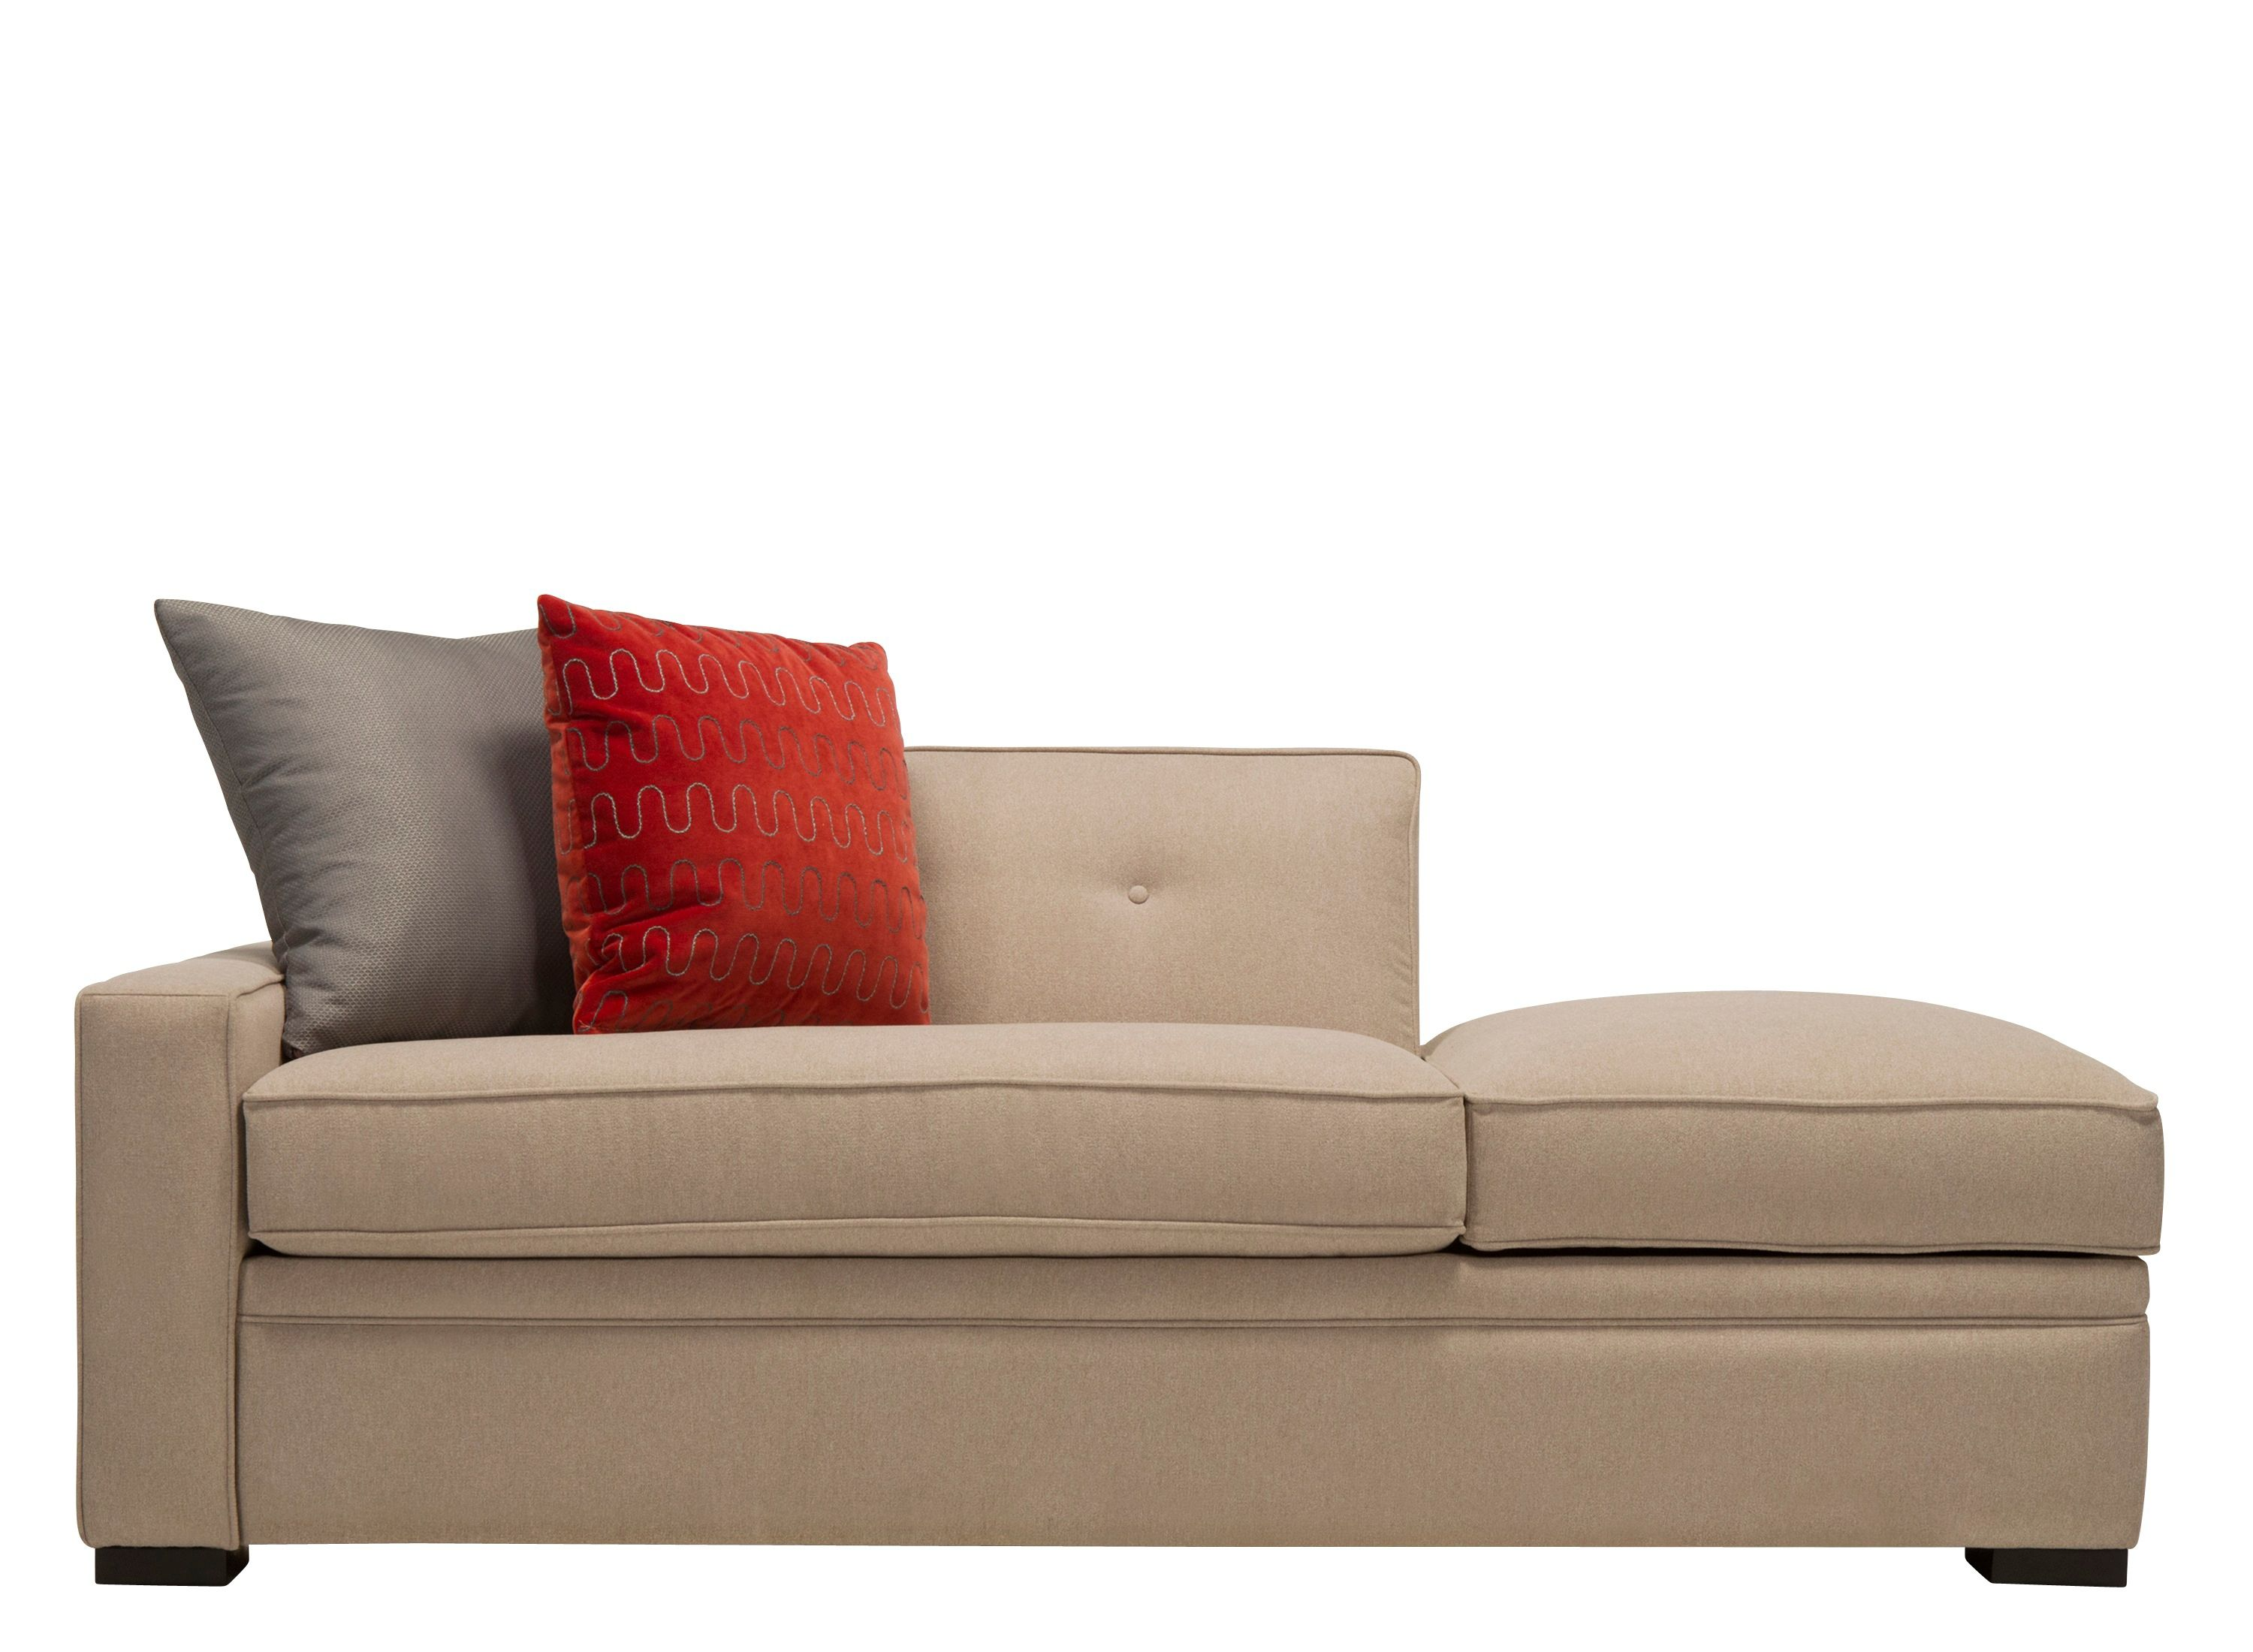 The Codi twin sleeper chaise lounge is one of those living room